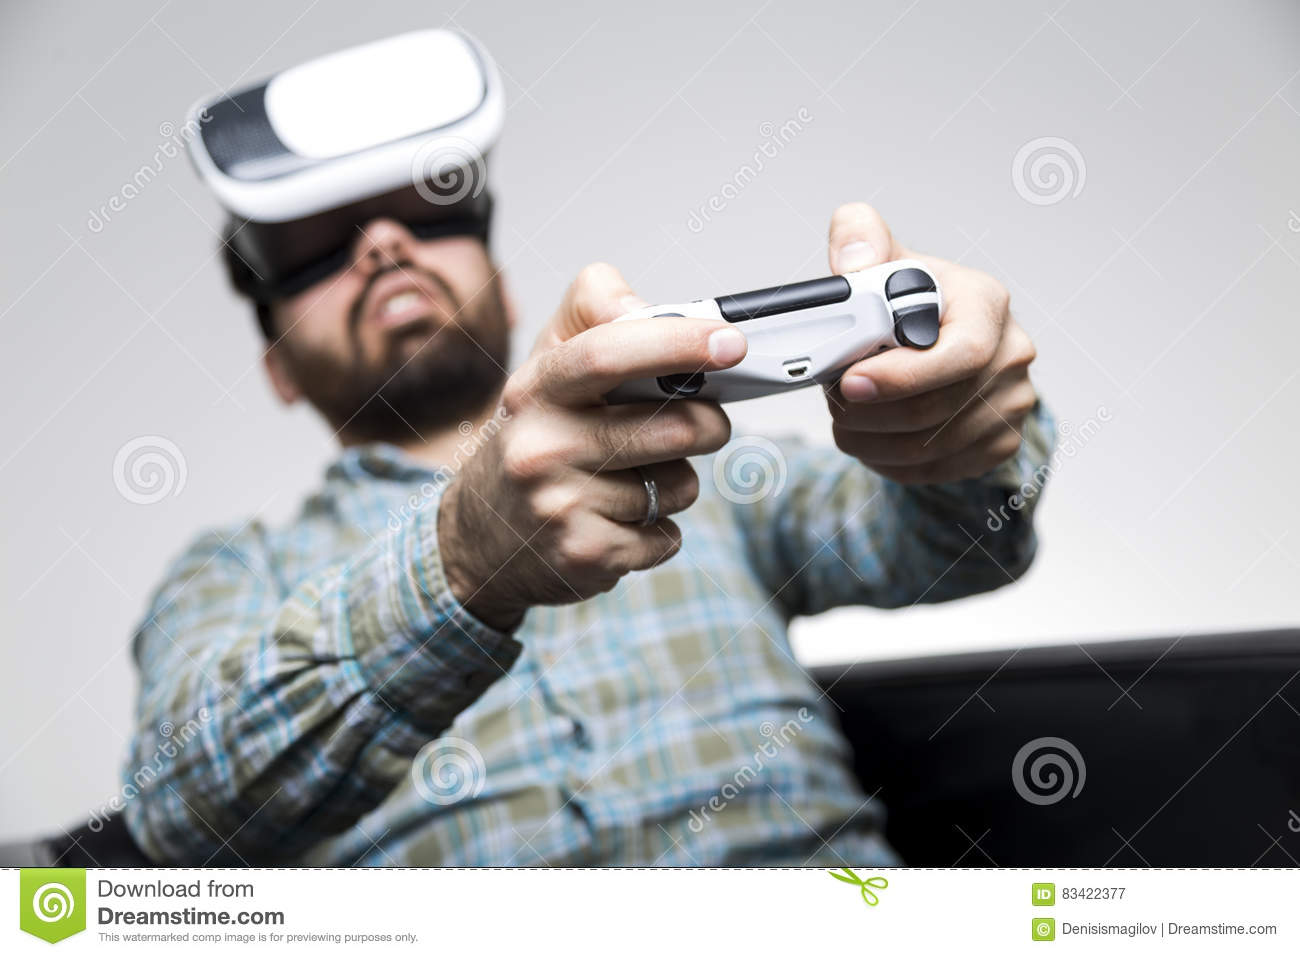 Man in shirt playing vr game with controller